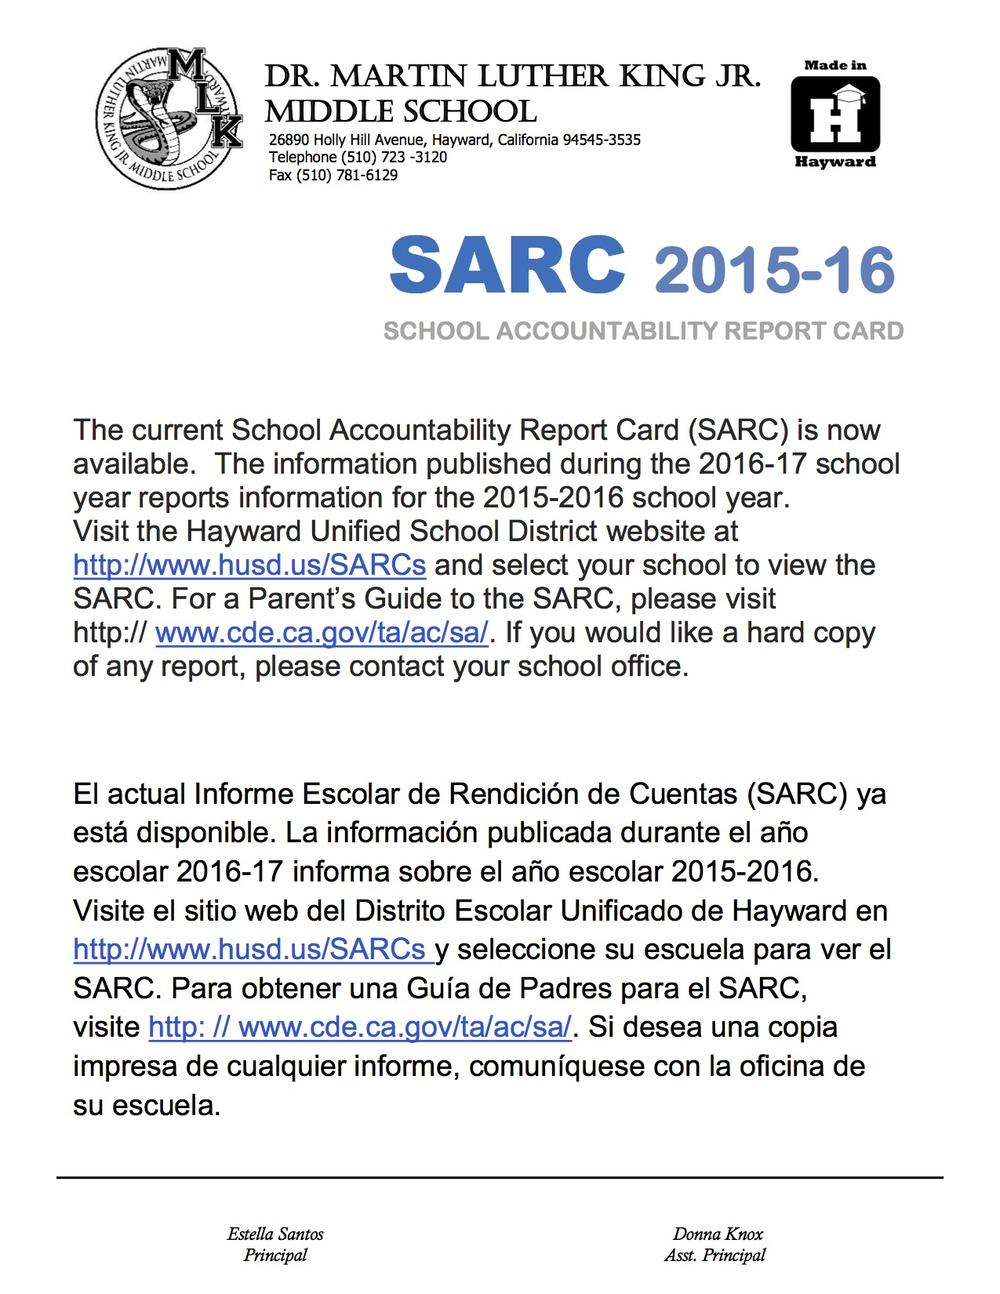 SARC Notification for Parents